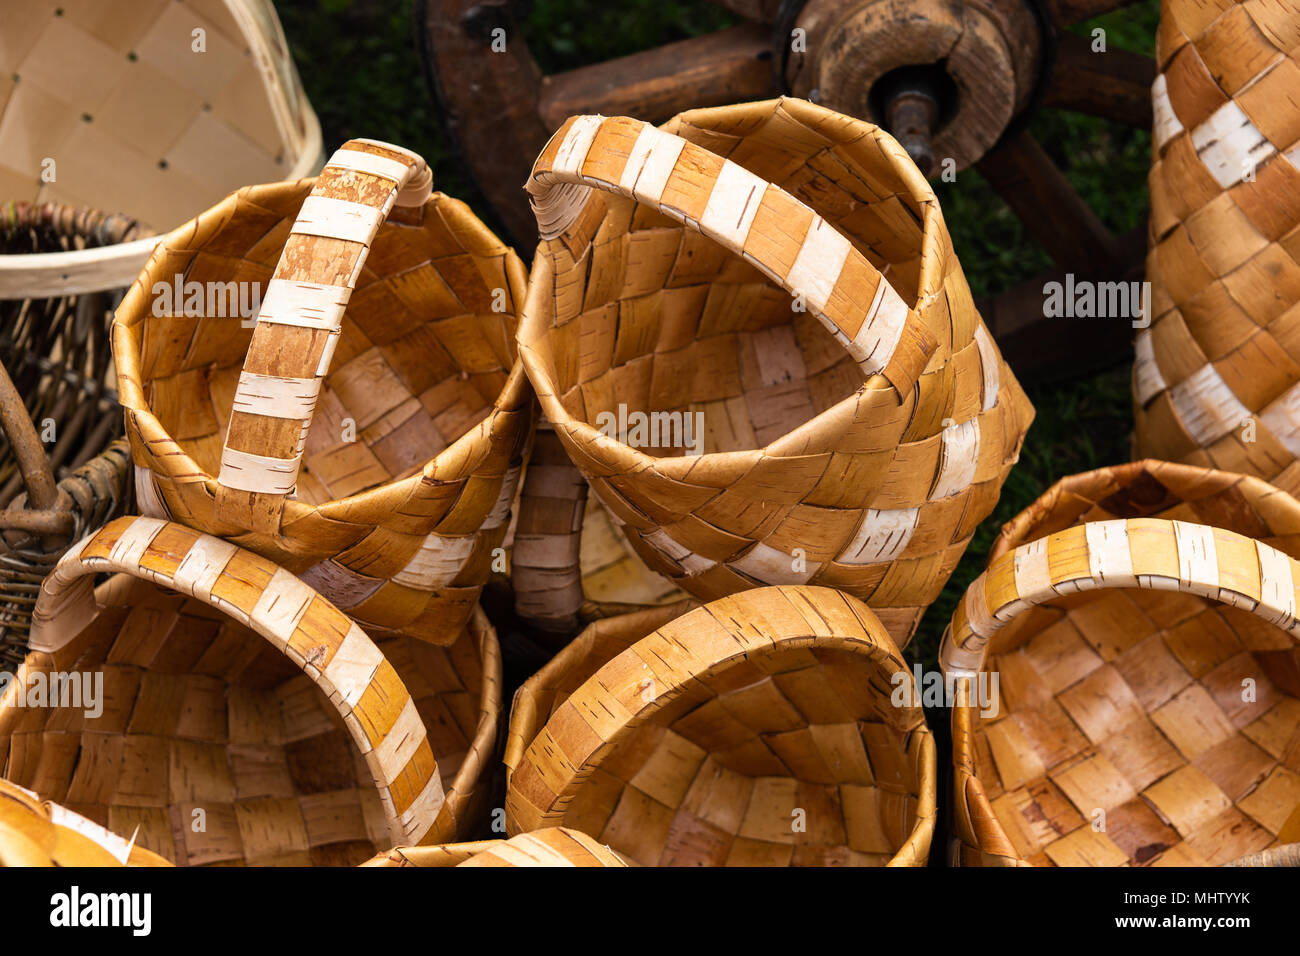 Brown wooden baskets made of a bast in a pile on the ground. Rural fair, vintage goods for sale - Stock Image